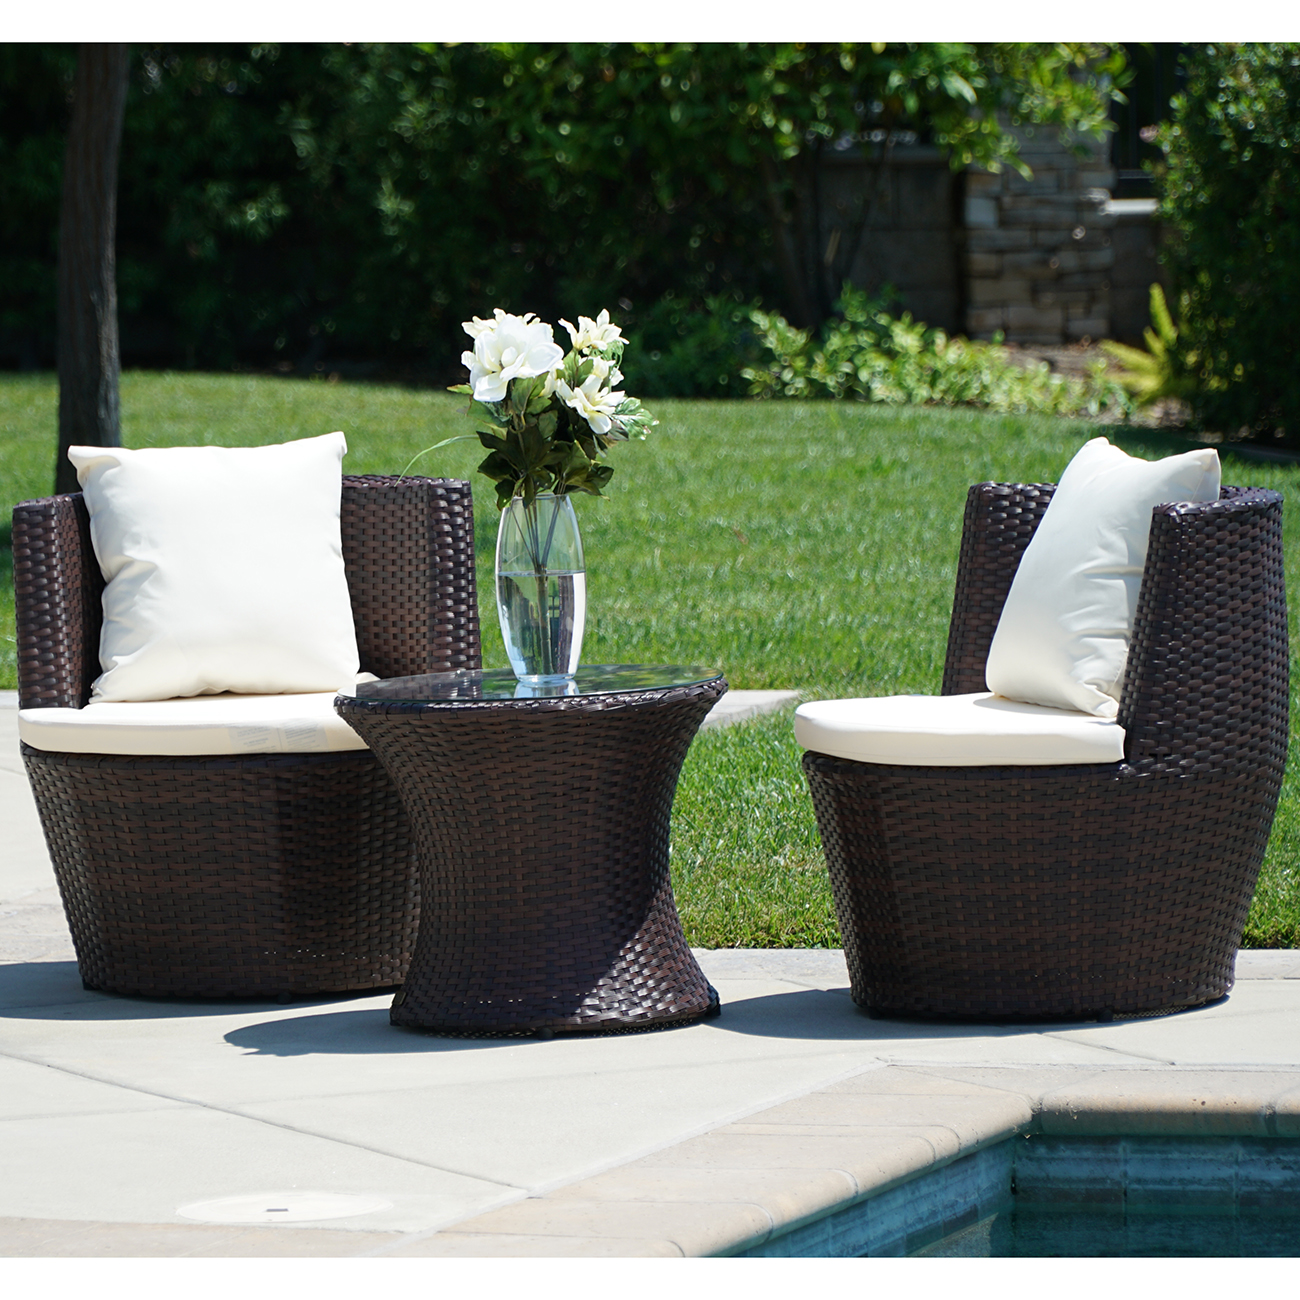 Wicker Circle Chair 3 Pc Patio Outdoor Rattan Set Wicker Furniture Glass